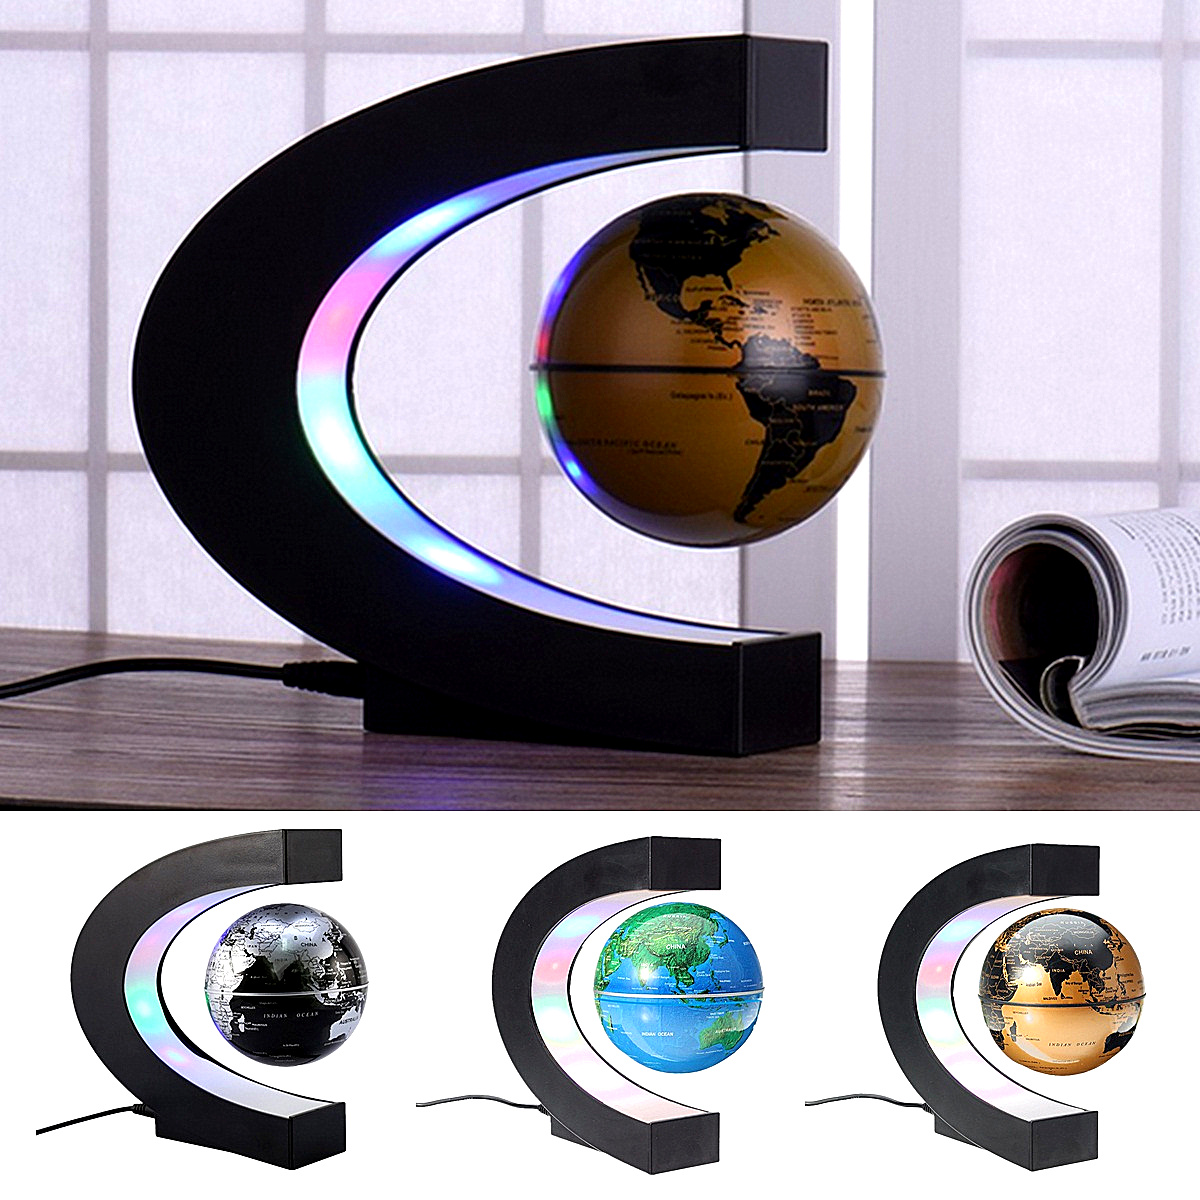 Anti Gravity Magnetic Levitation Earth Globe Floating Terrestrial Globe World Map with LED Light Home Office Decoration OrnamentAnti Gravity Magnetic Levitation Earth Globe Floating Terrestrial Globe World Map with LED Light Home Office Decoration Ornament